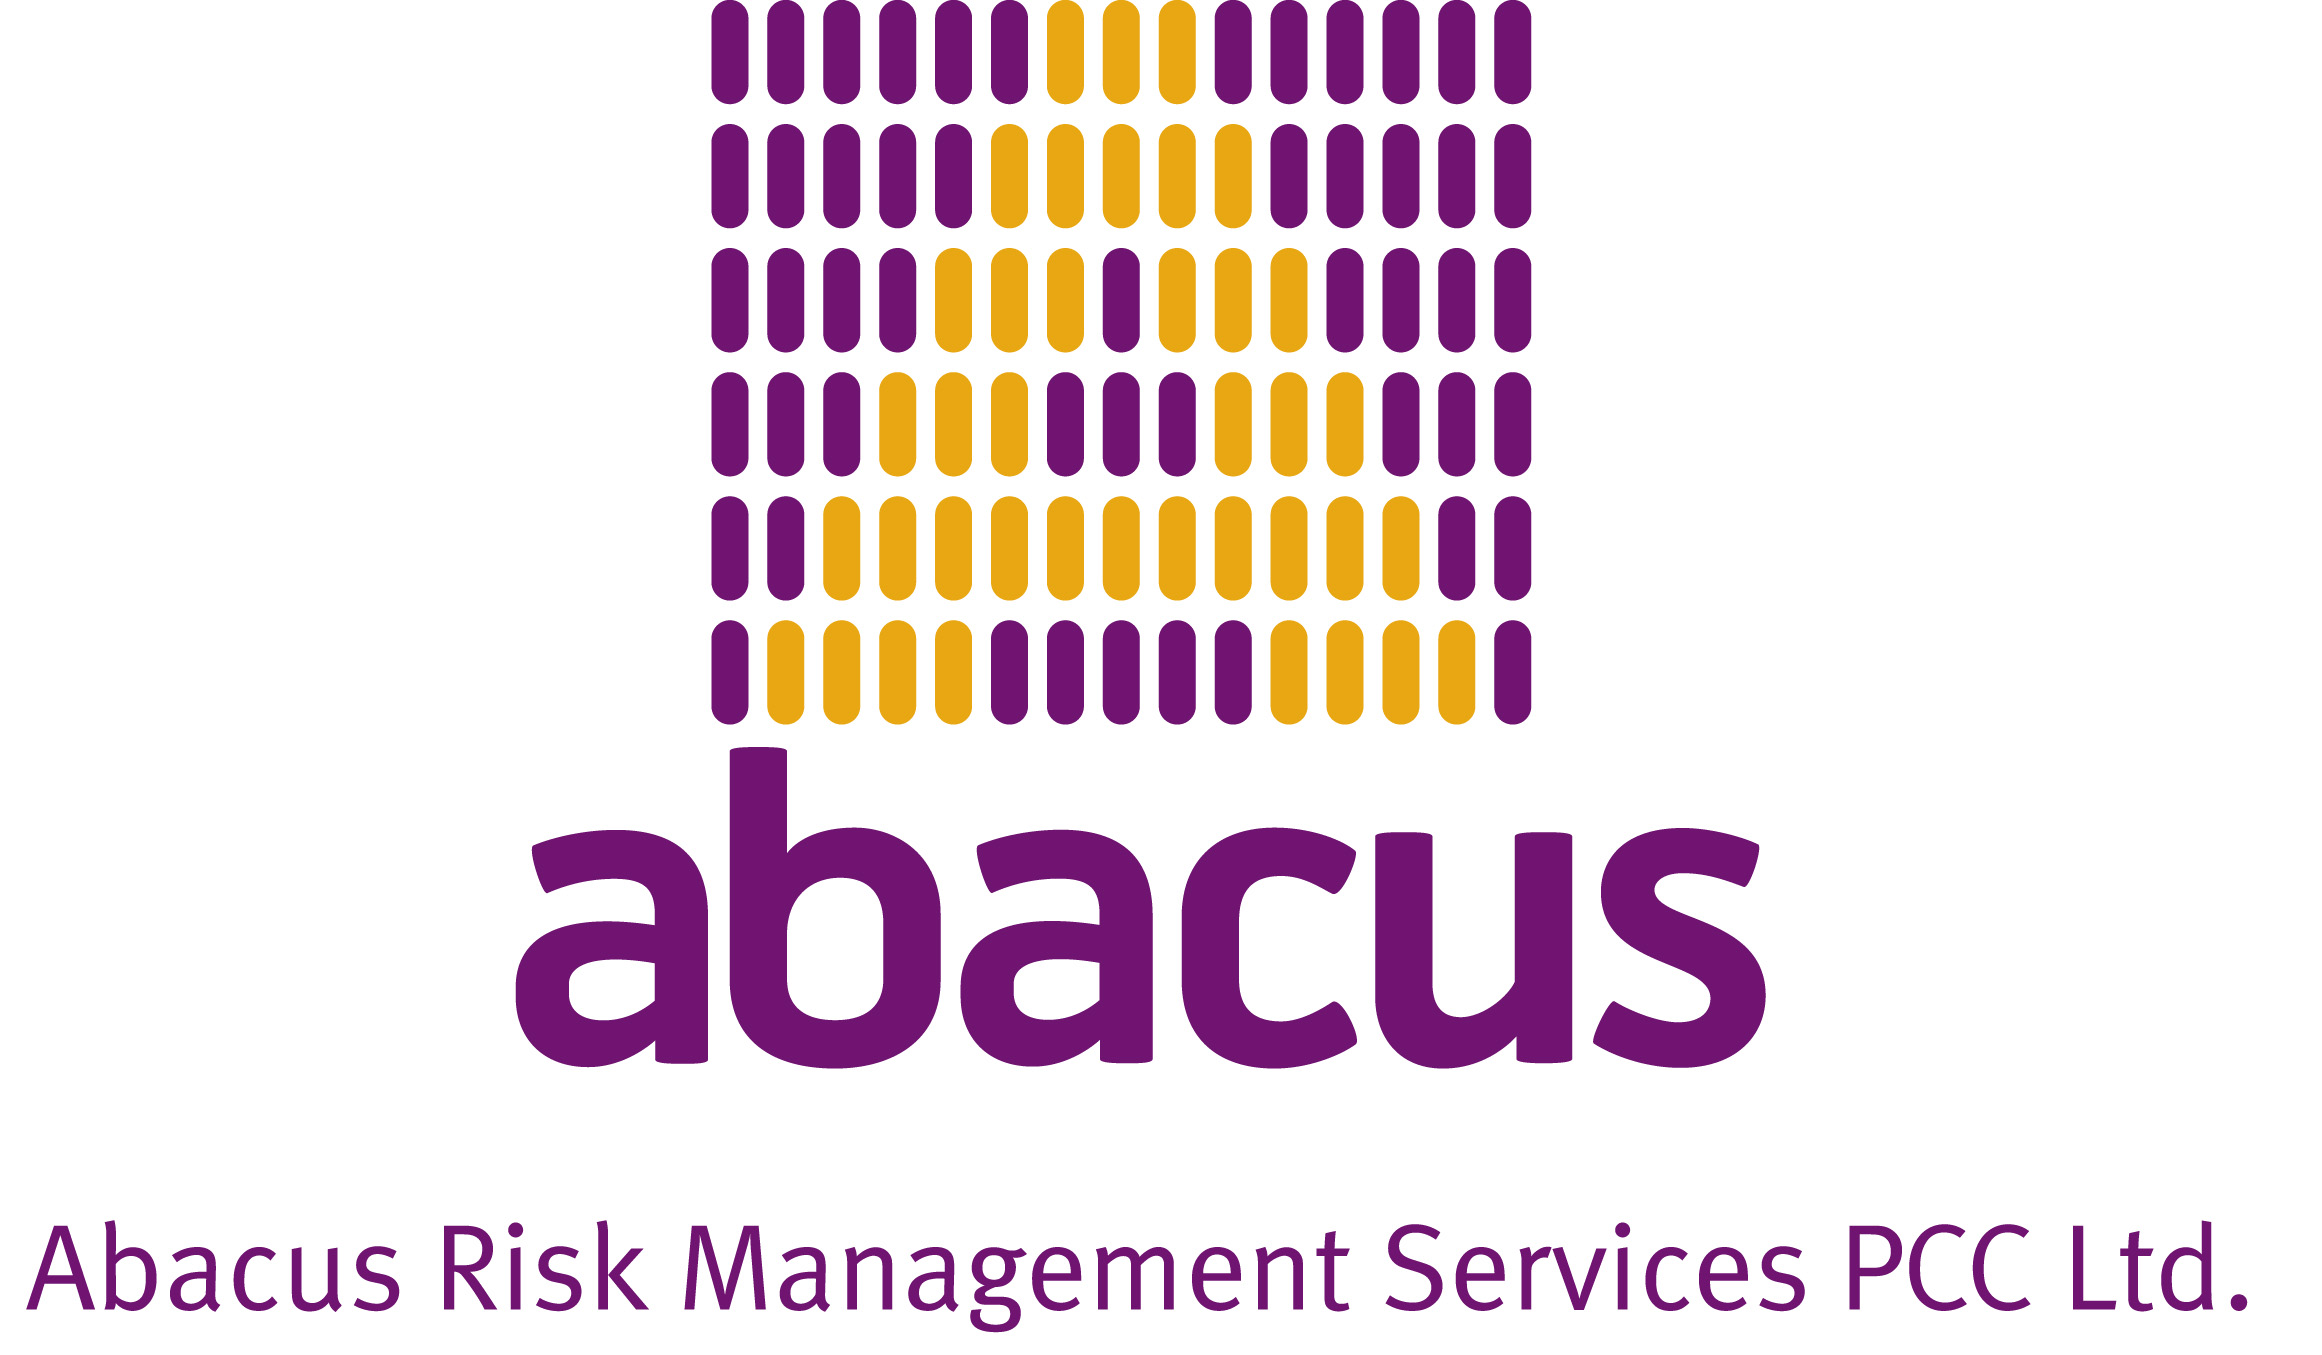 Abacus Risk Management Services PCC Ltd